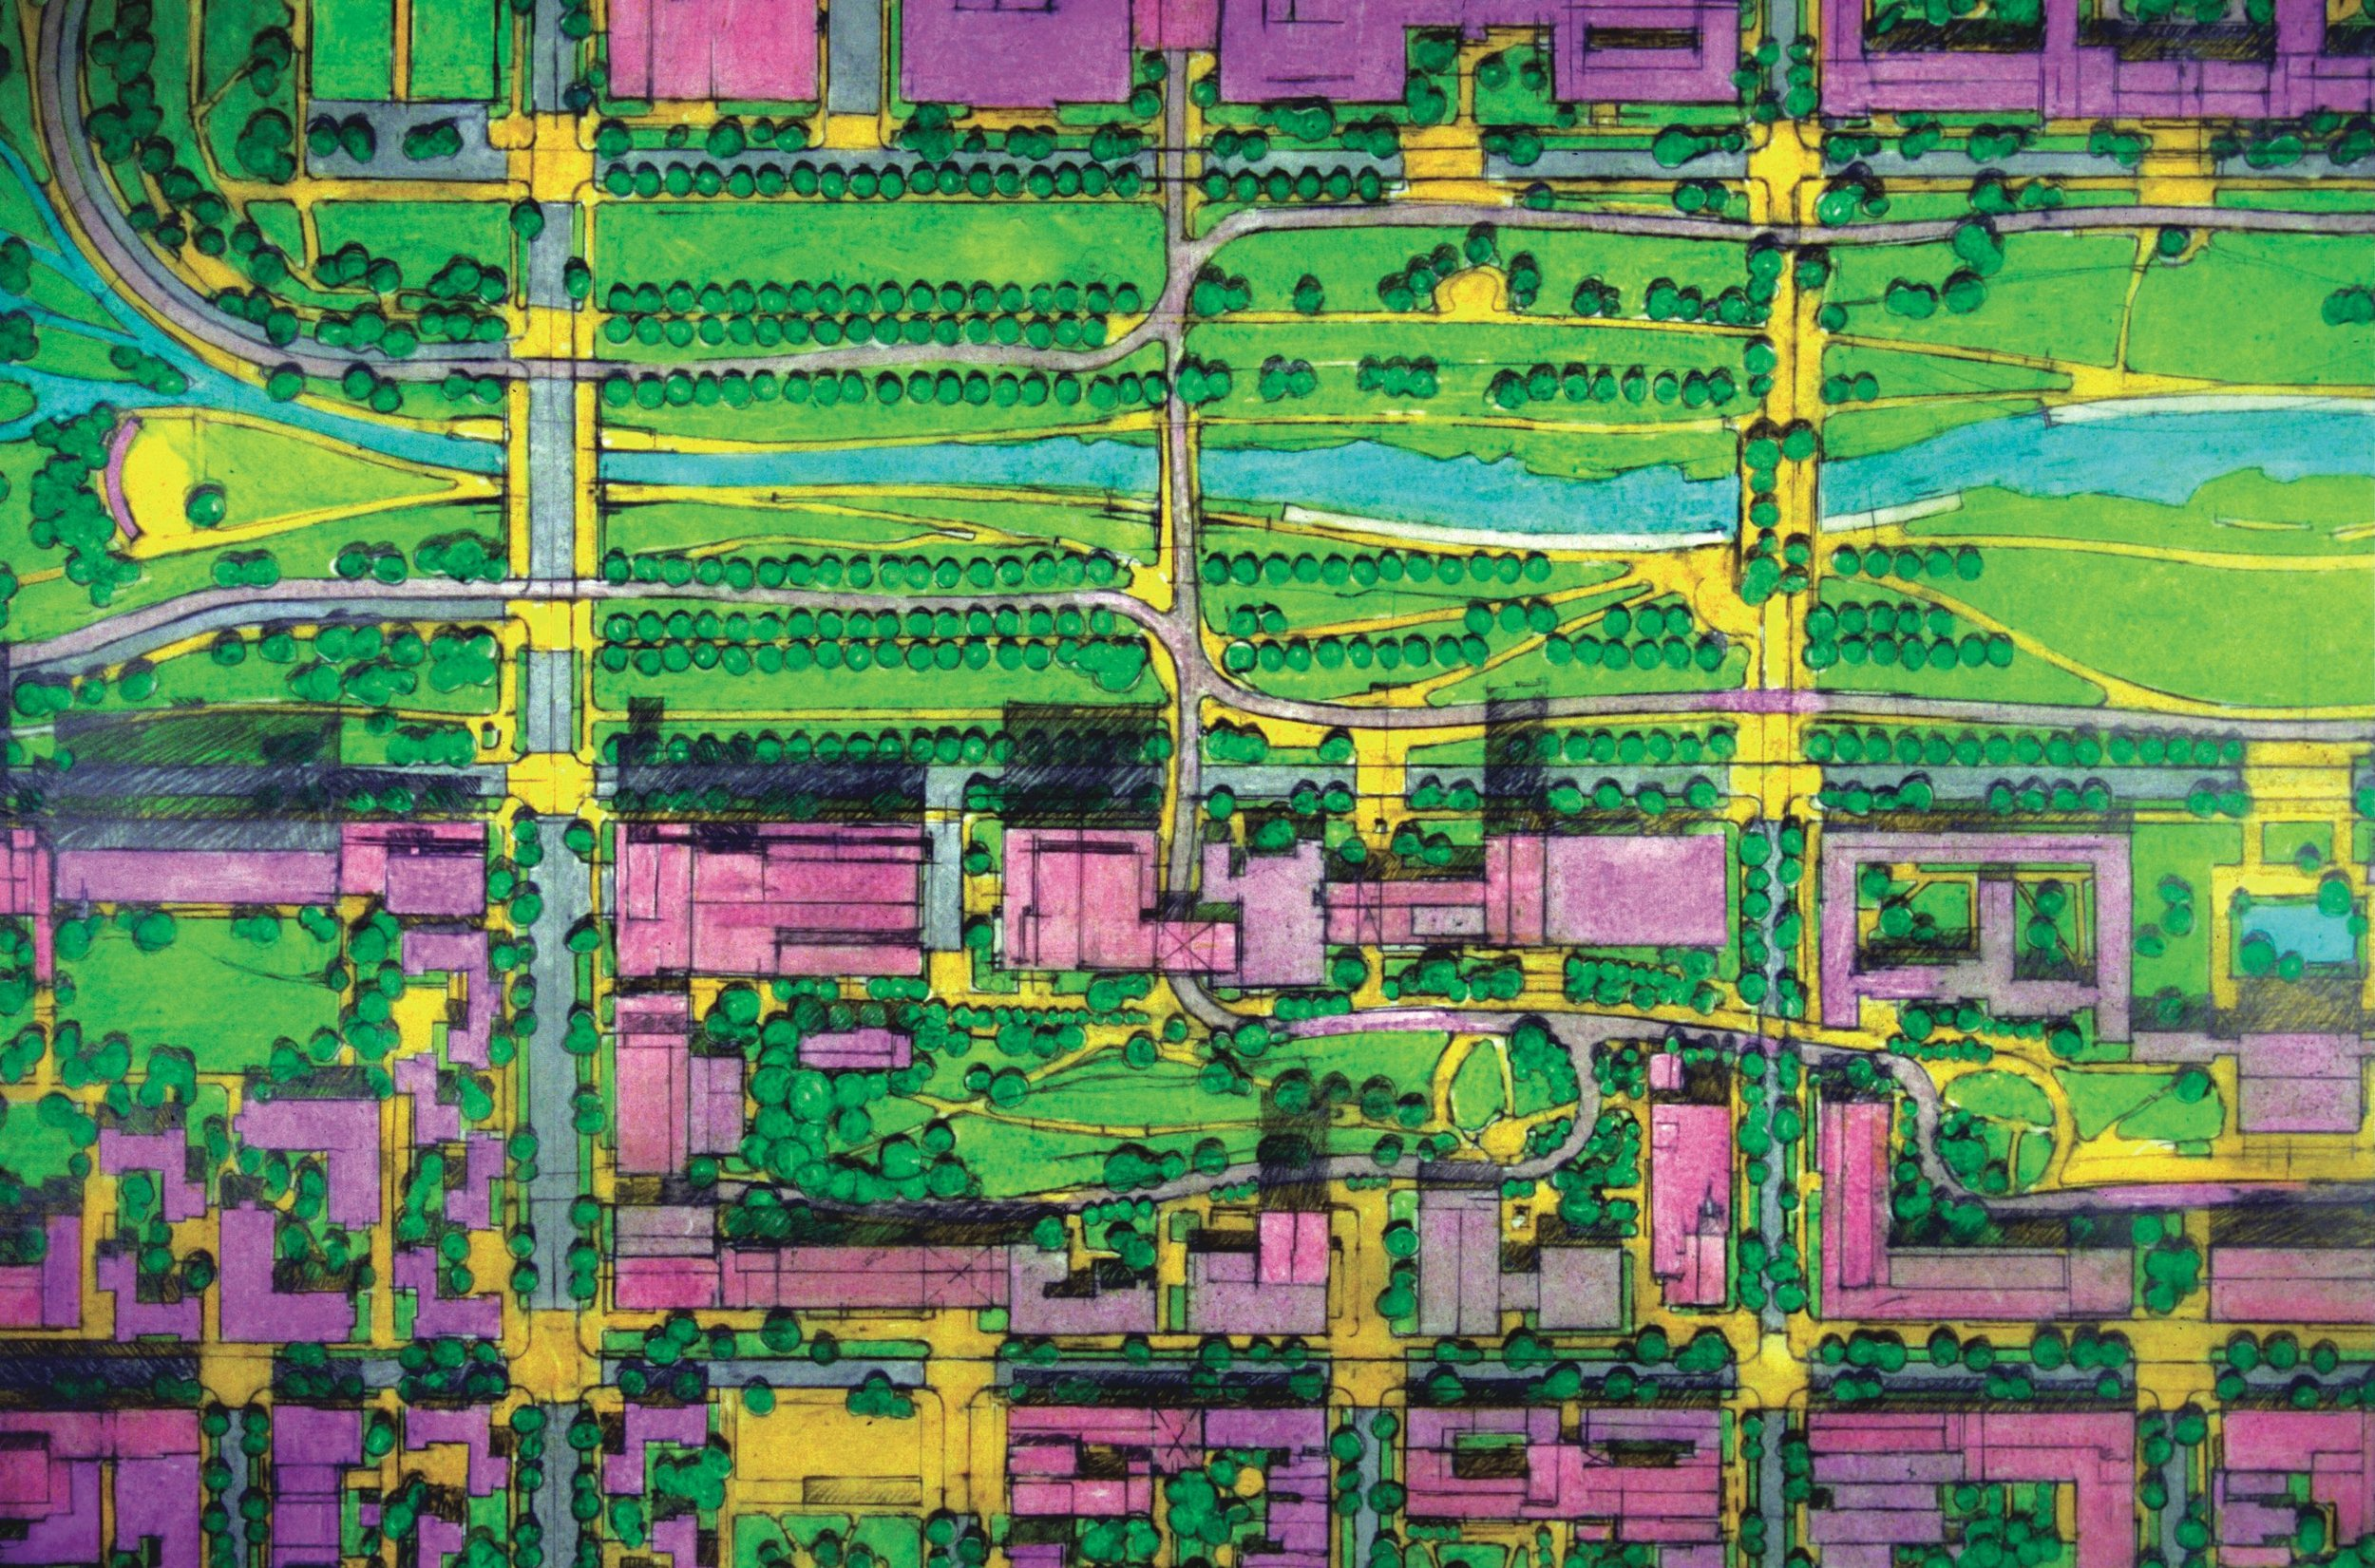 Chicago_Masterplan_Close Up.jpg